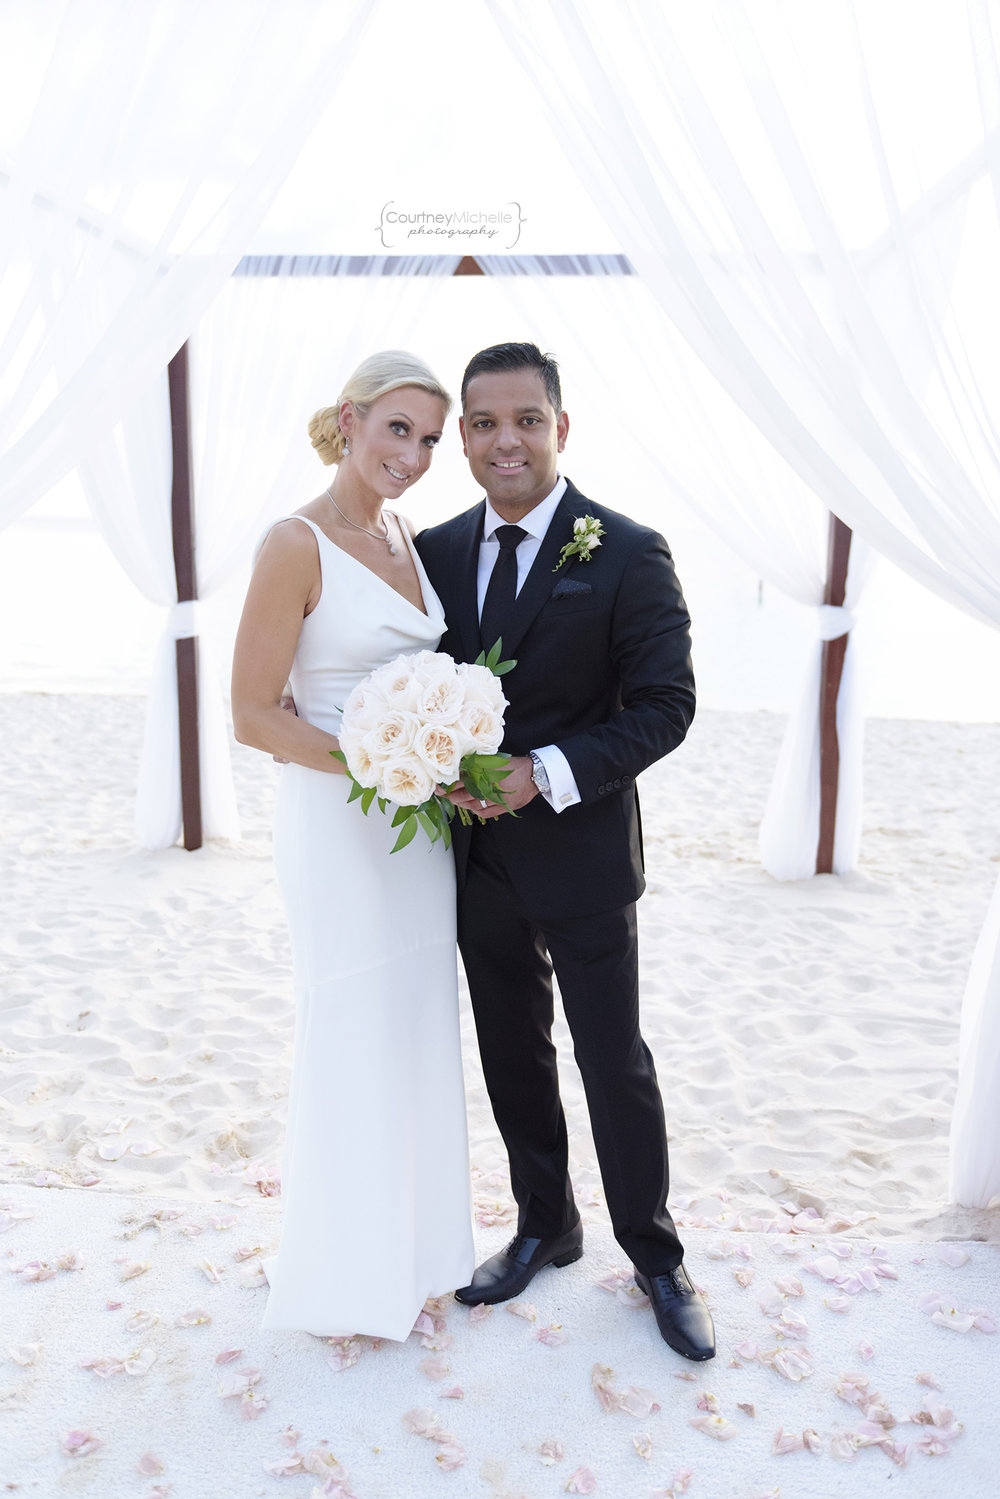 bride-and-groom-portrait-grand-cayman-beach-wedding-photography-by-courtney-laper©CopyrightCMP-LeaAnneRaj-8045.jpg